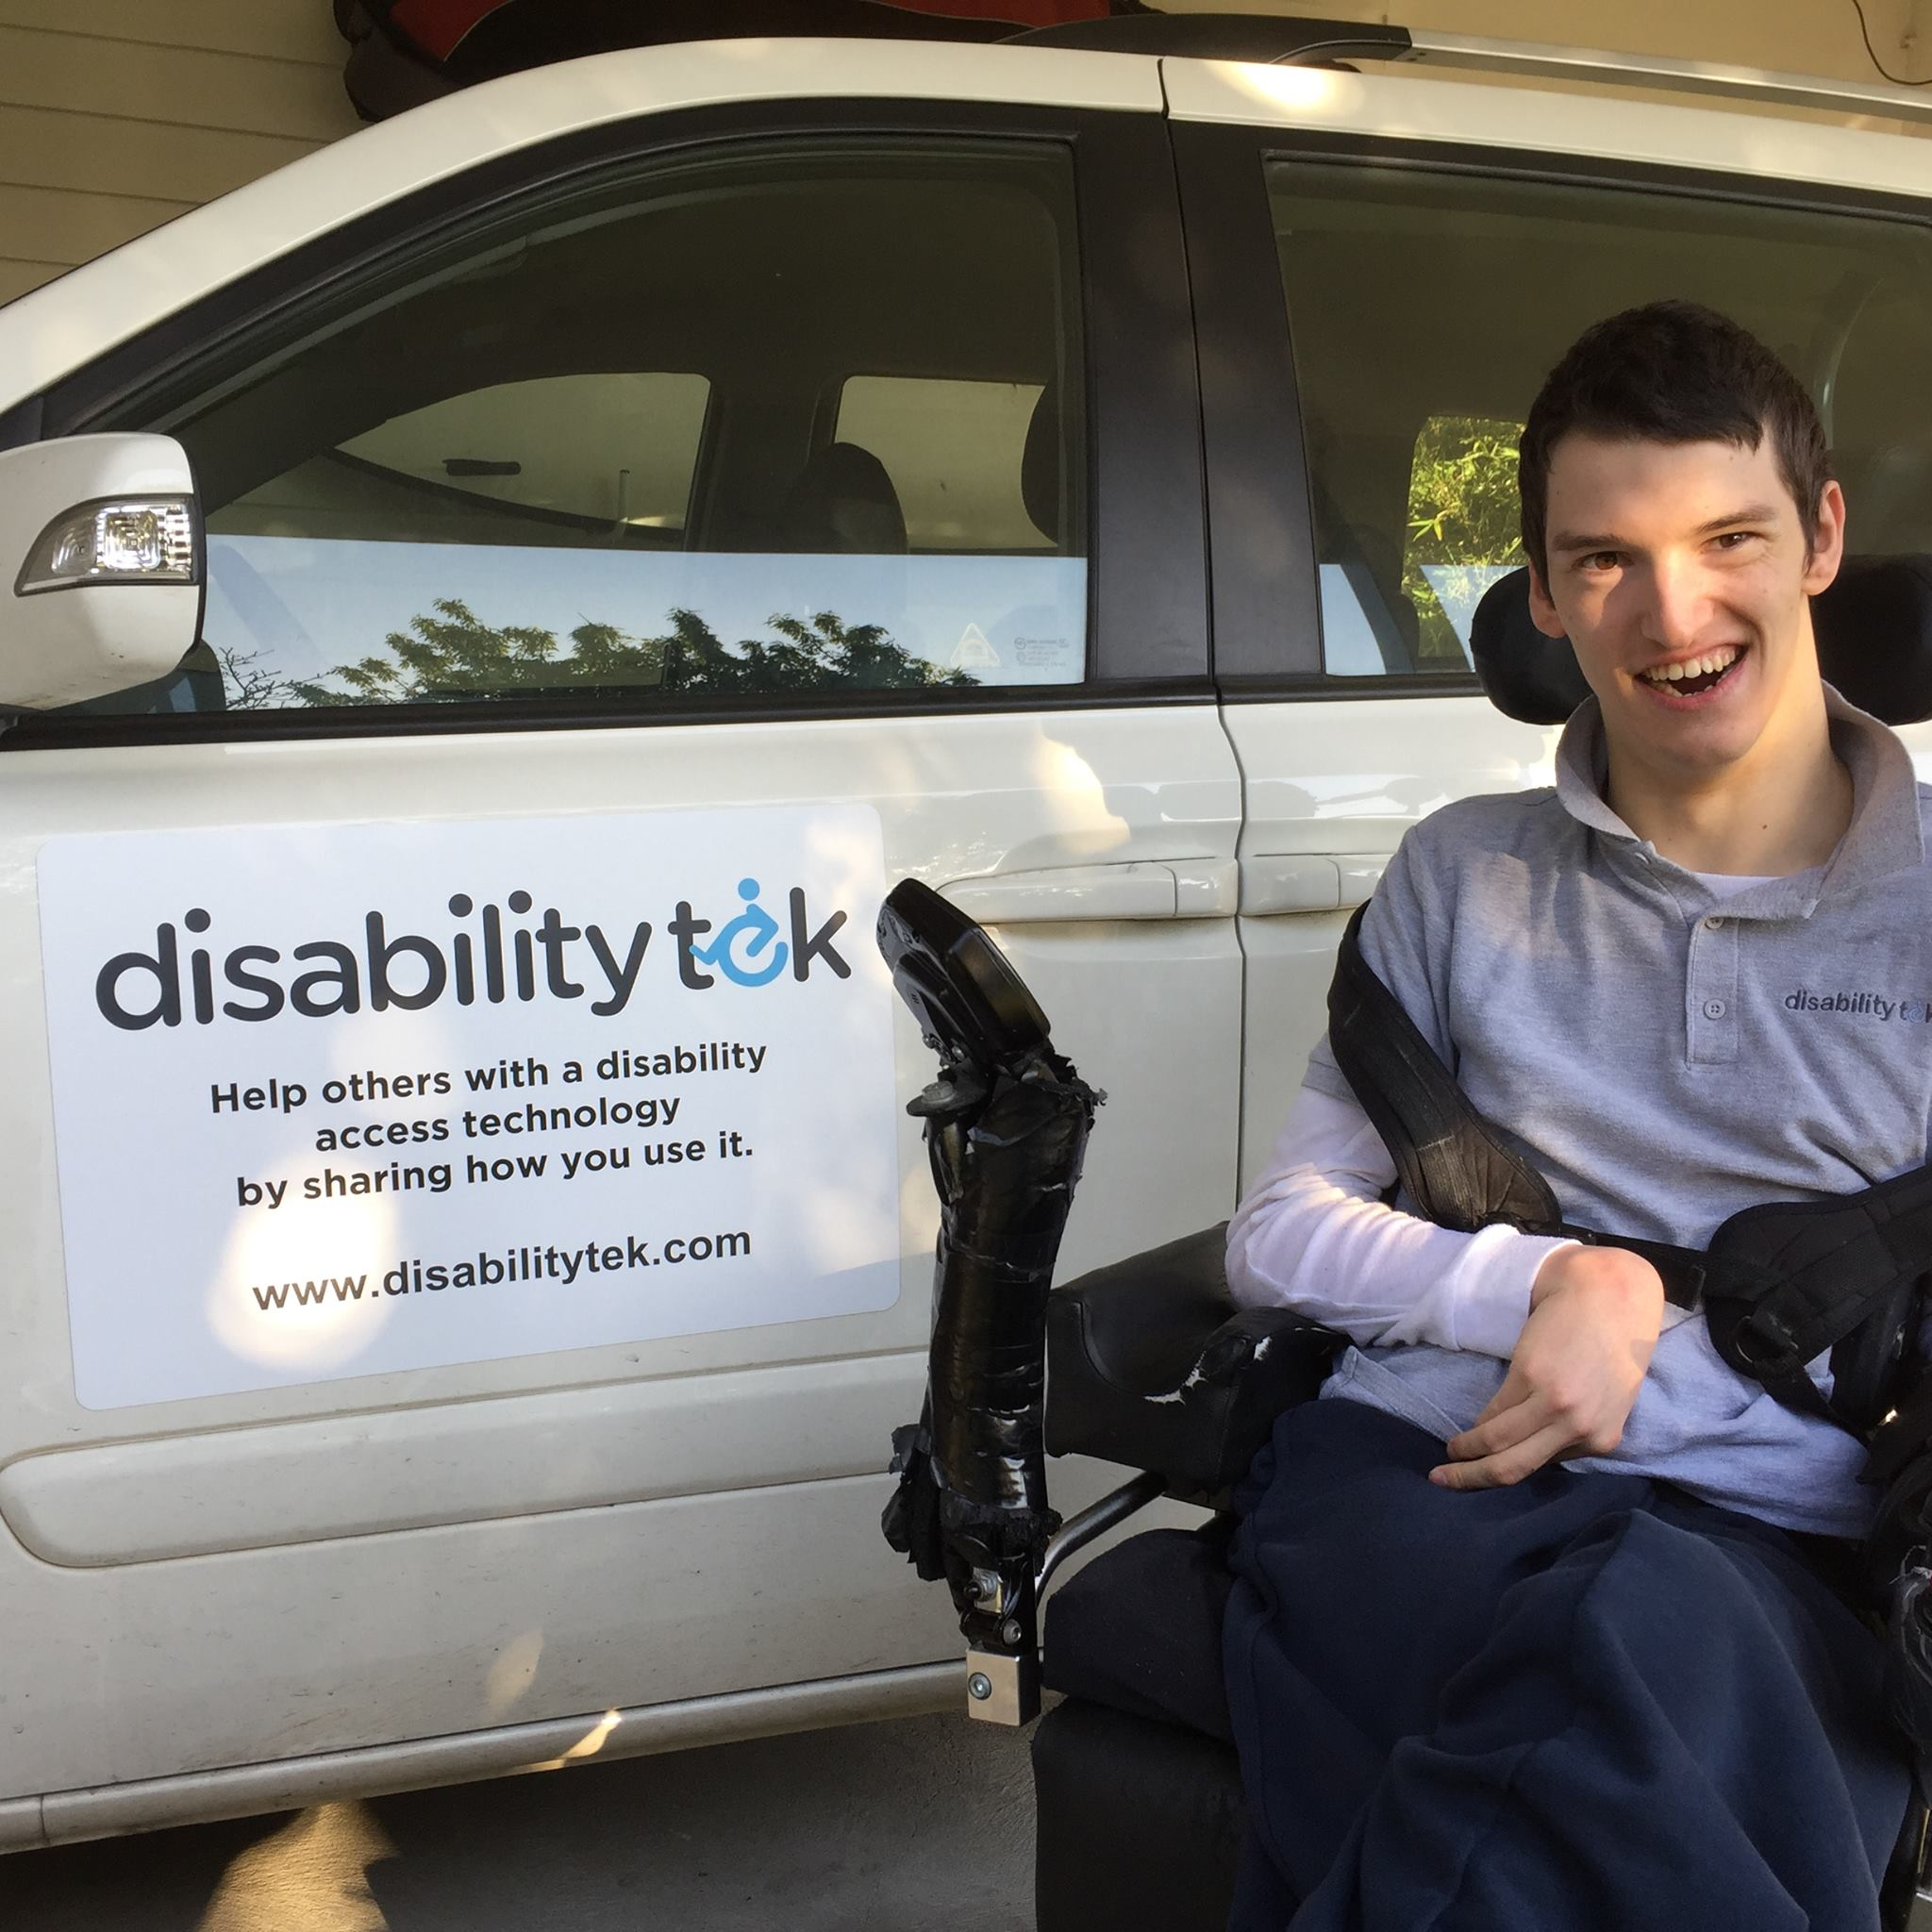 Noah Callan, founder of Disability Tek